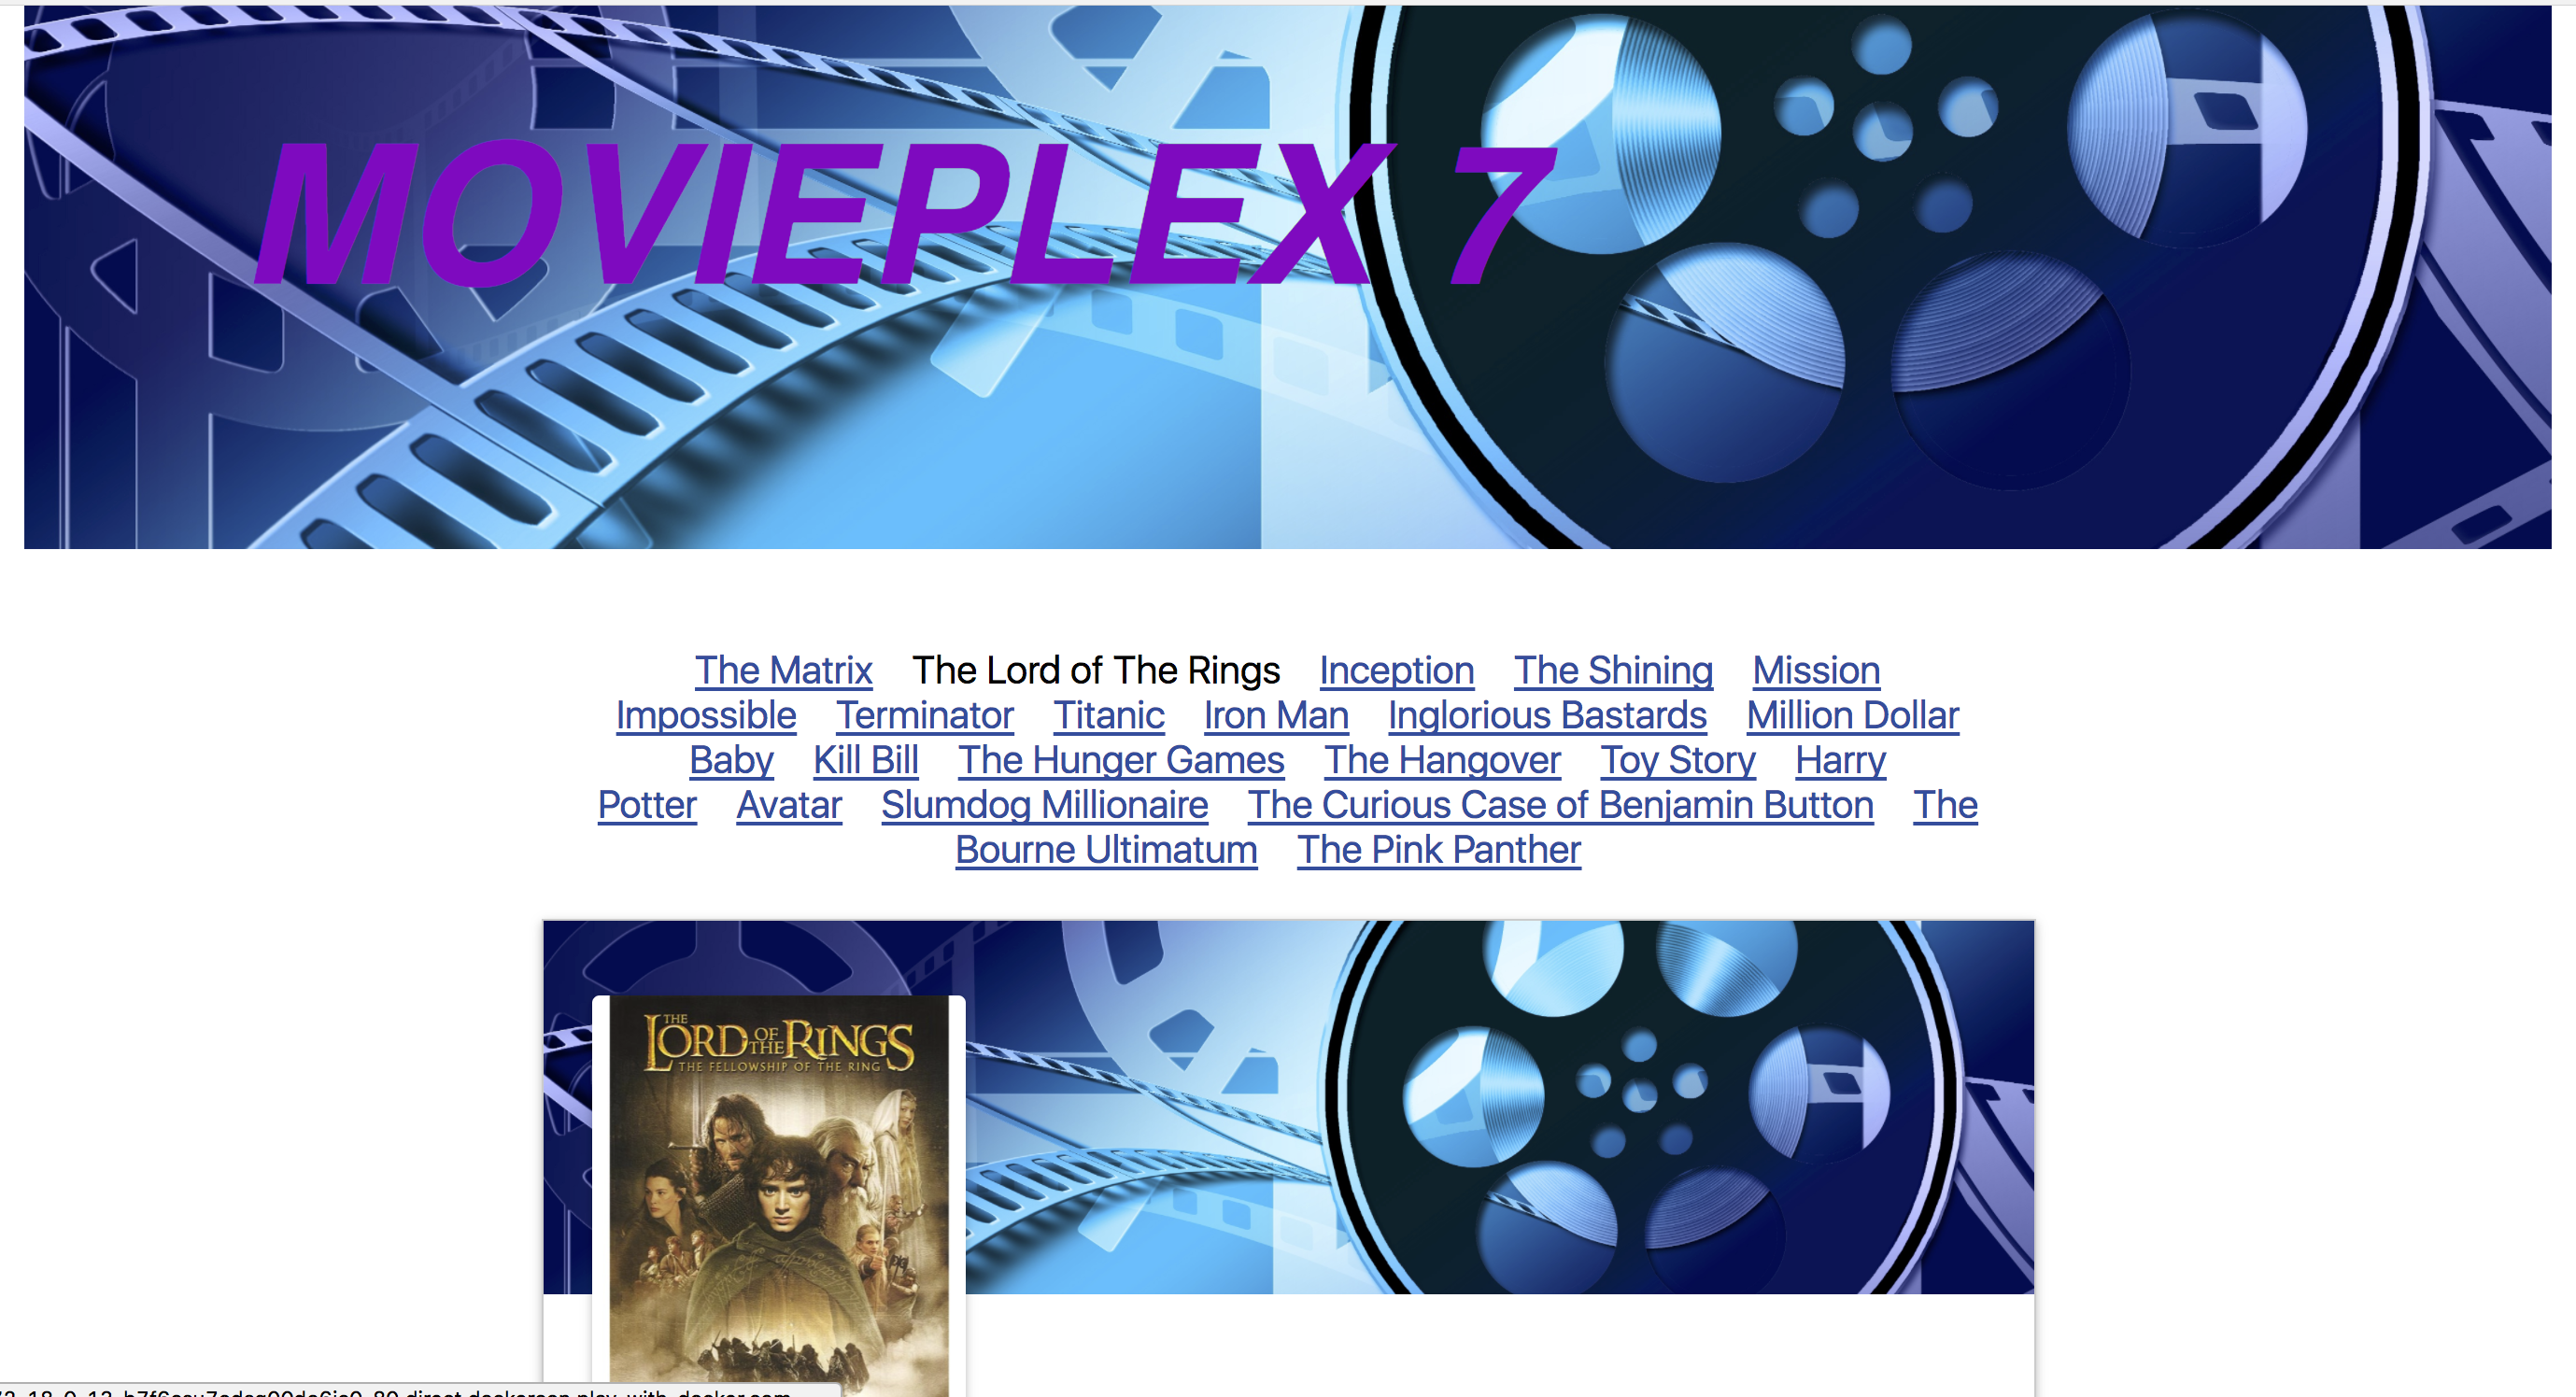 Movieplex7 App with a React JS client displaying movie posters